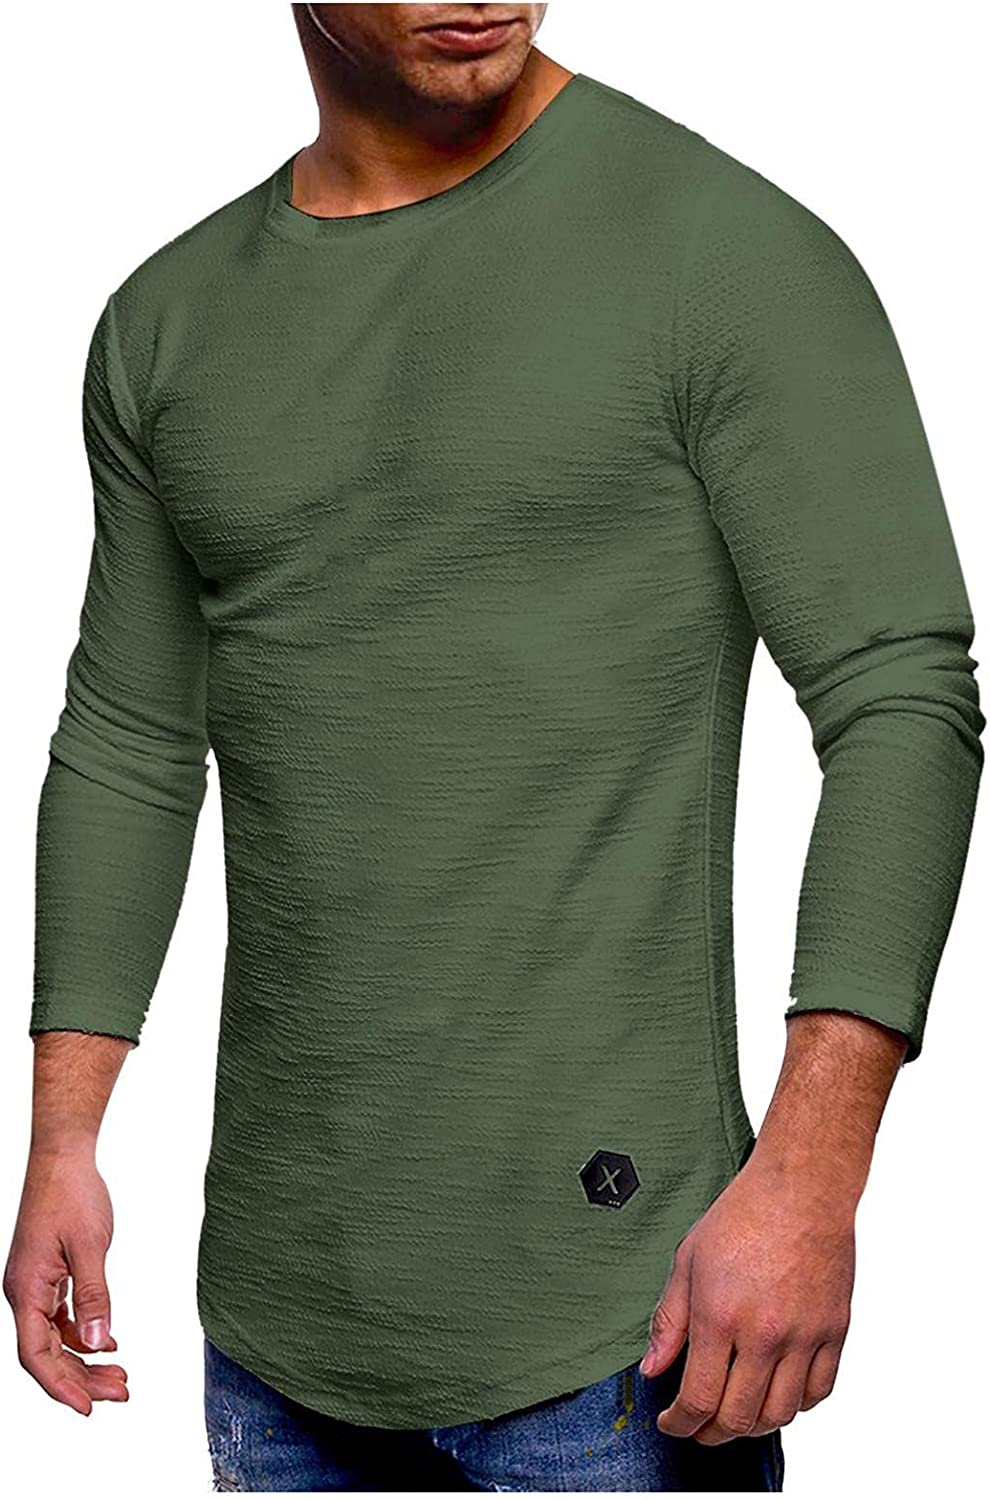 Long Sleeve Tee Shirts for Men Workout Gym Sport Pullover Casual Muscle Athletic Sweatshirt Workout T Shirts Tops